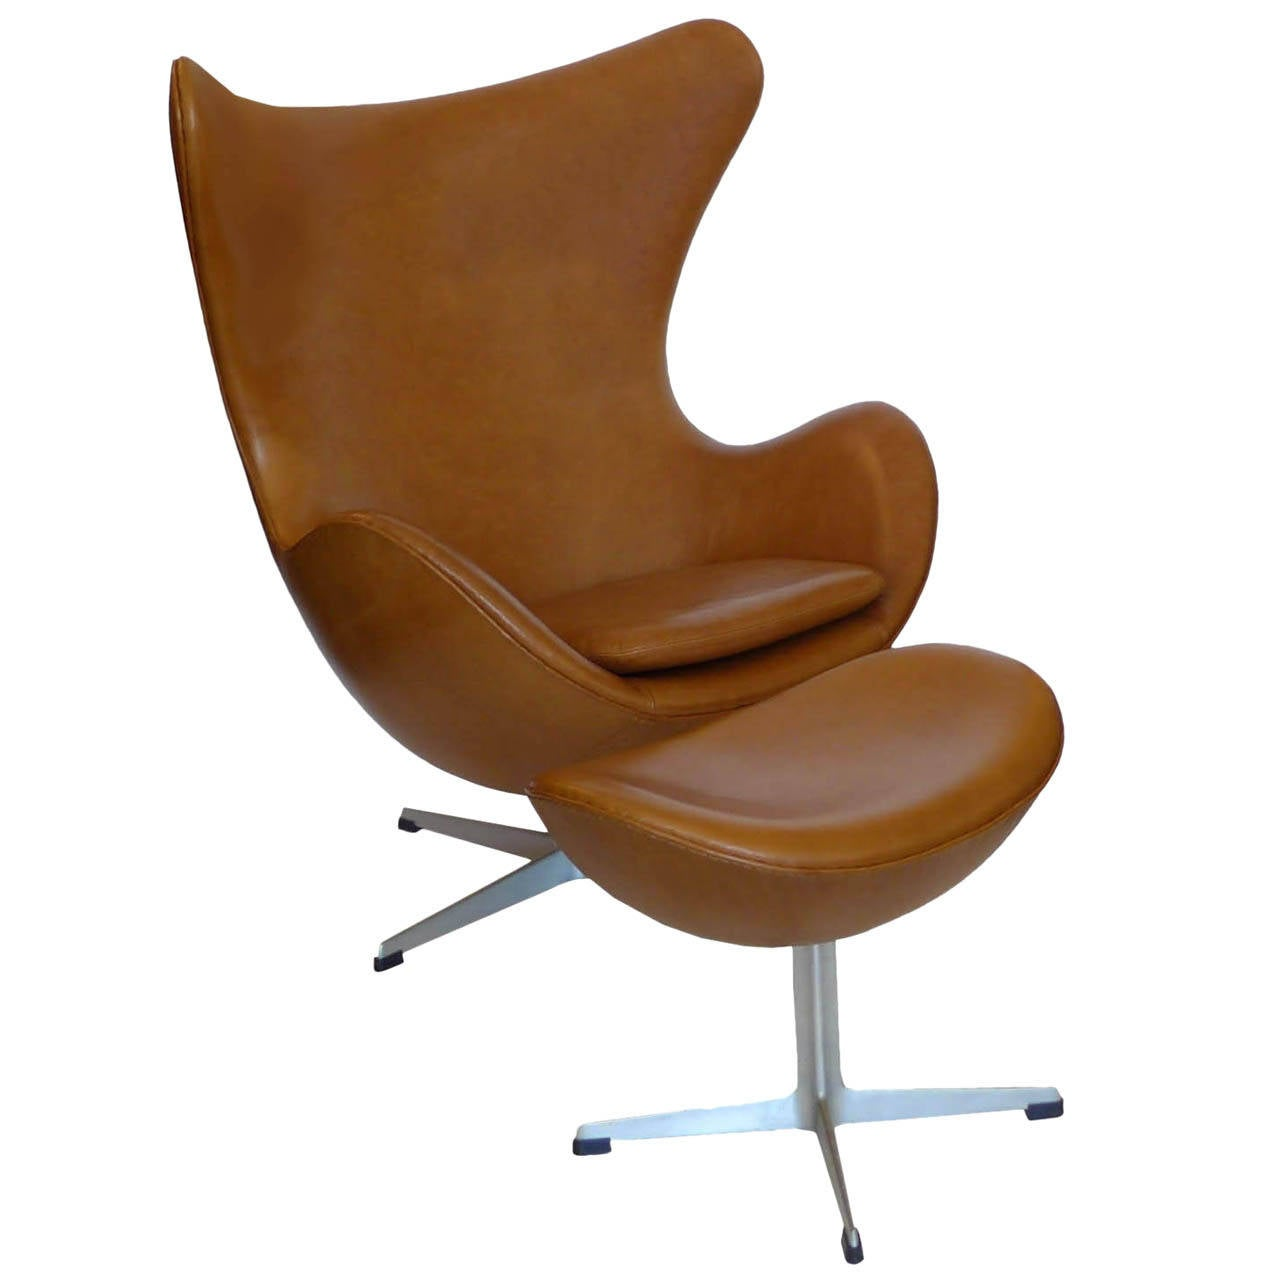 original carmel tan egg chair and ottoman by arne jacobsen. Black Bedroom Furniture Sets. Home Design Ideas